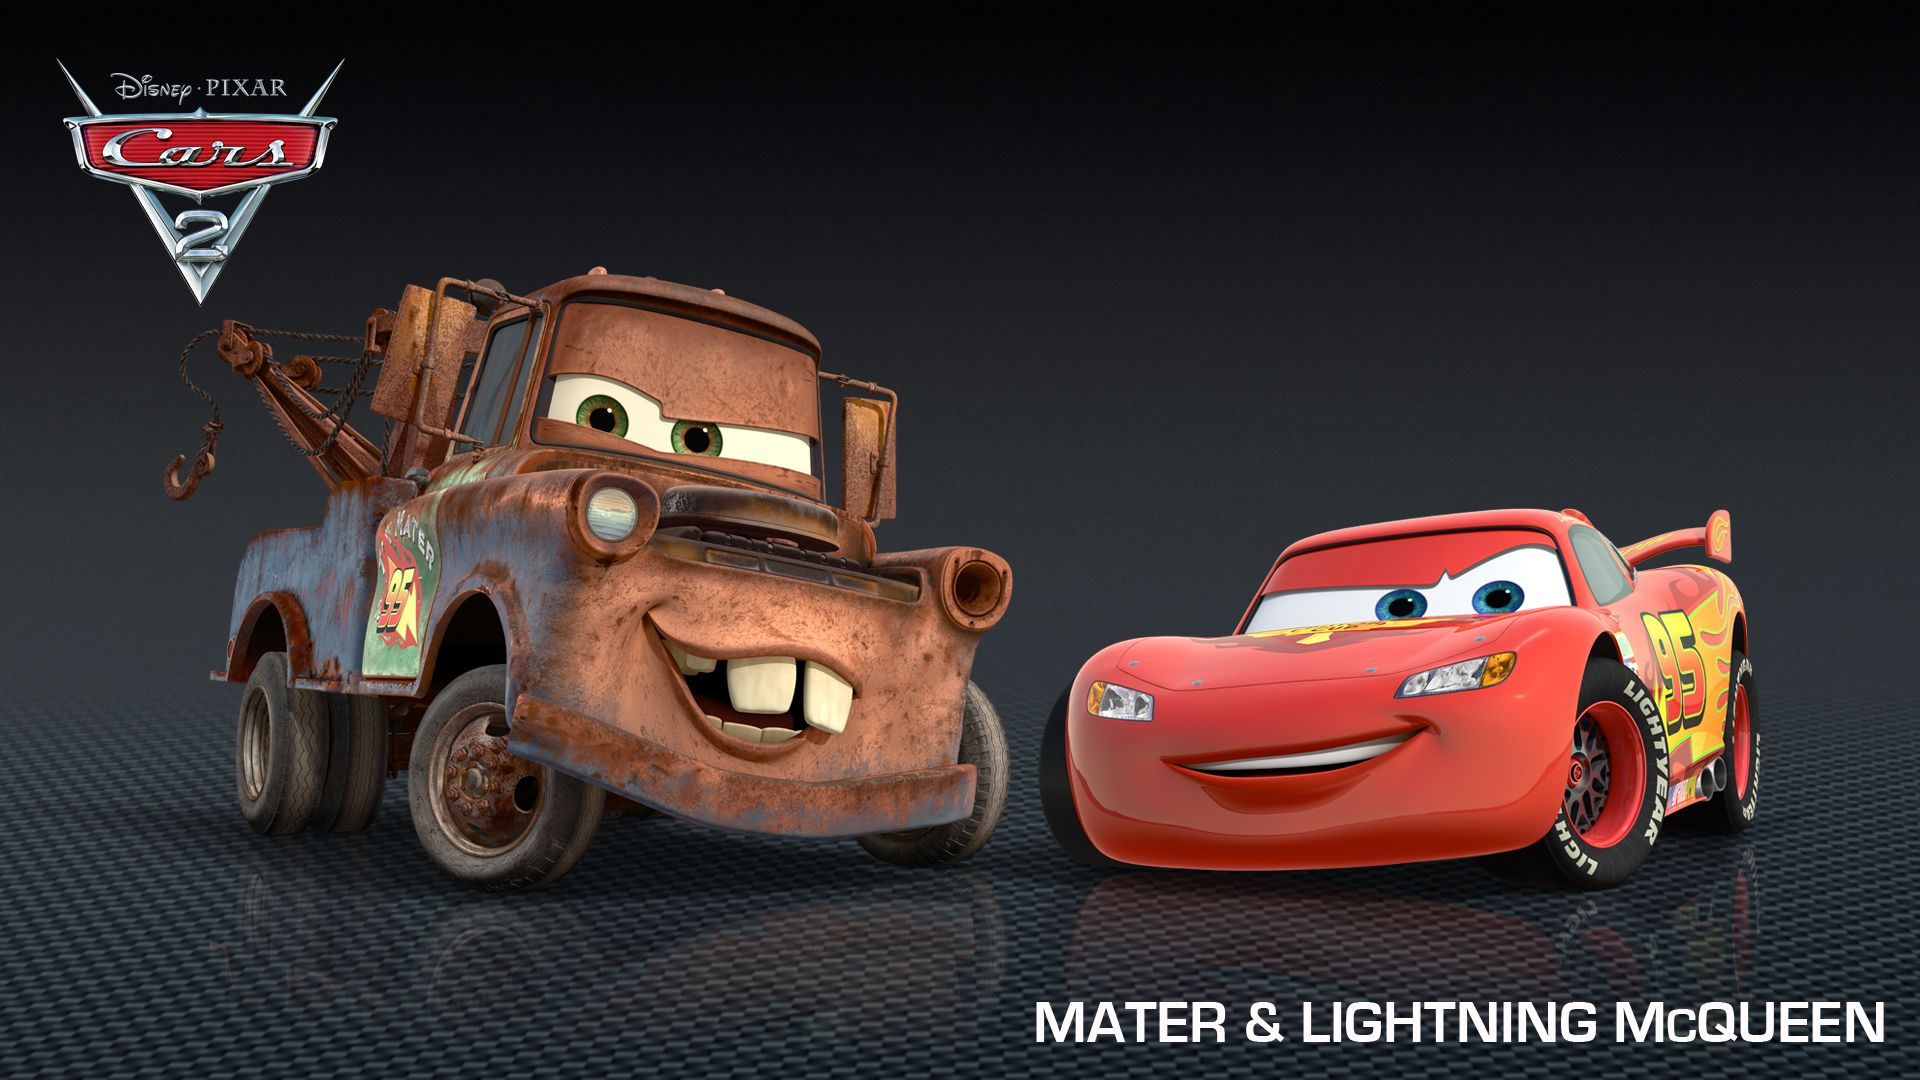 More Cars 2 Character Images Descriptions Video Disney Cars Cars 2 Movie Disney Cars Movie